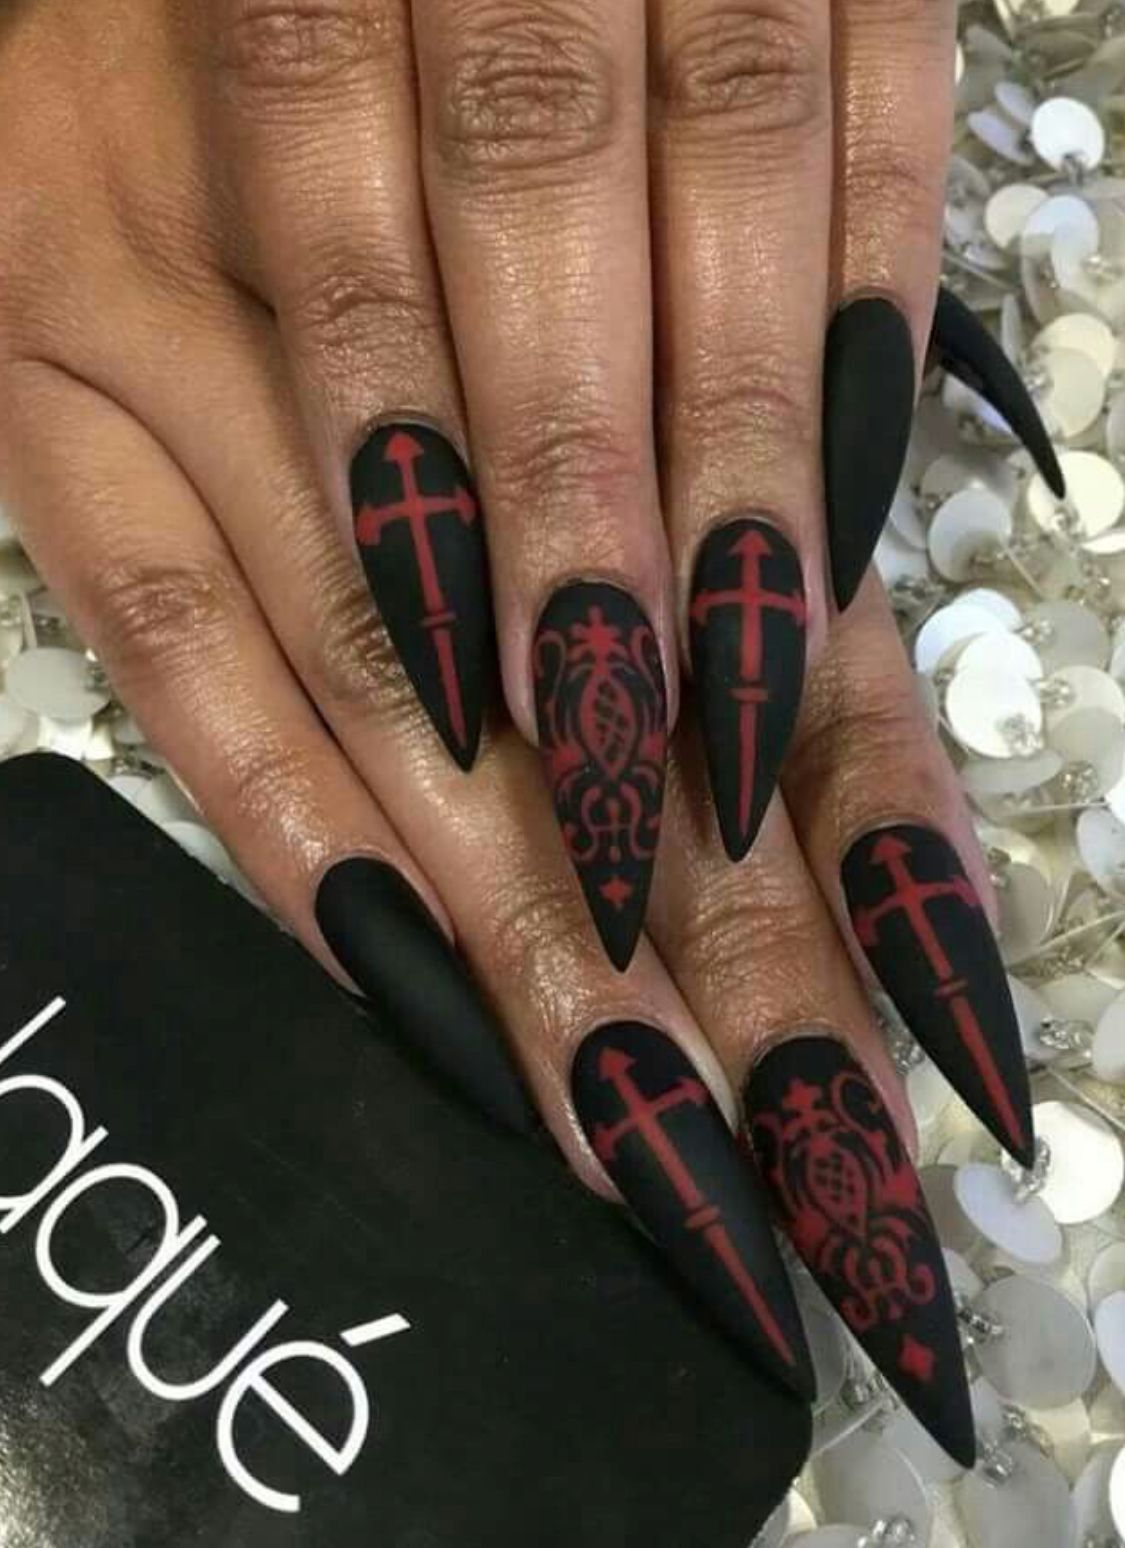 Pin by Versicapeter on Nails (With images) | Halloween ...